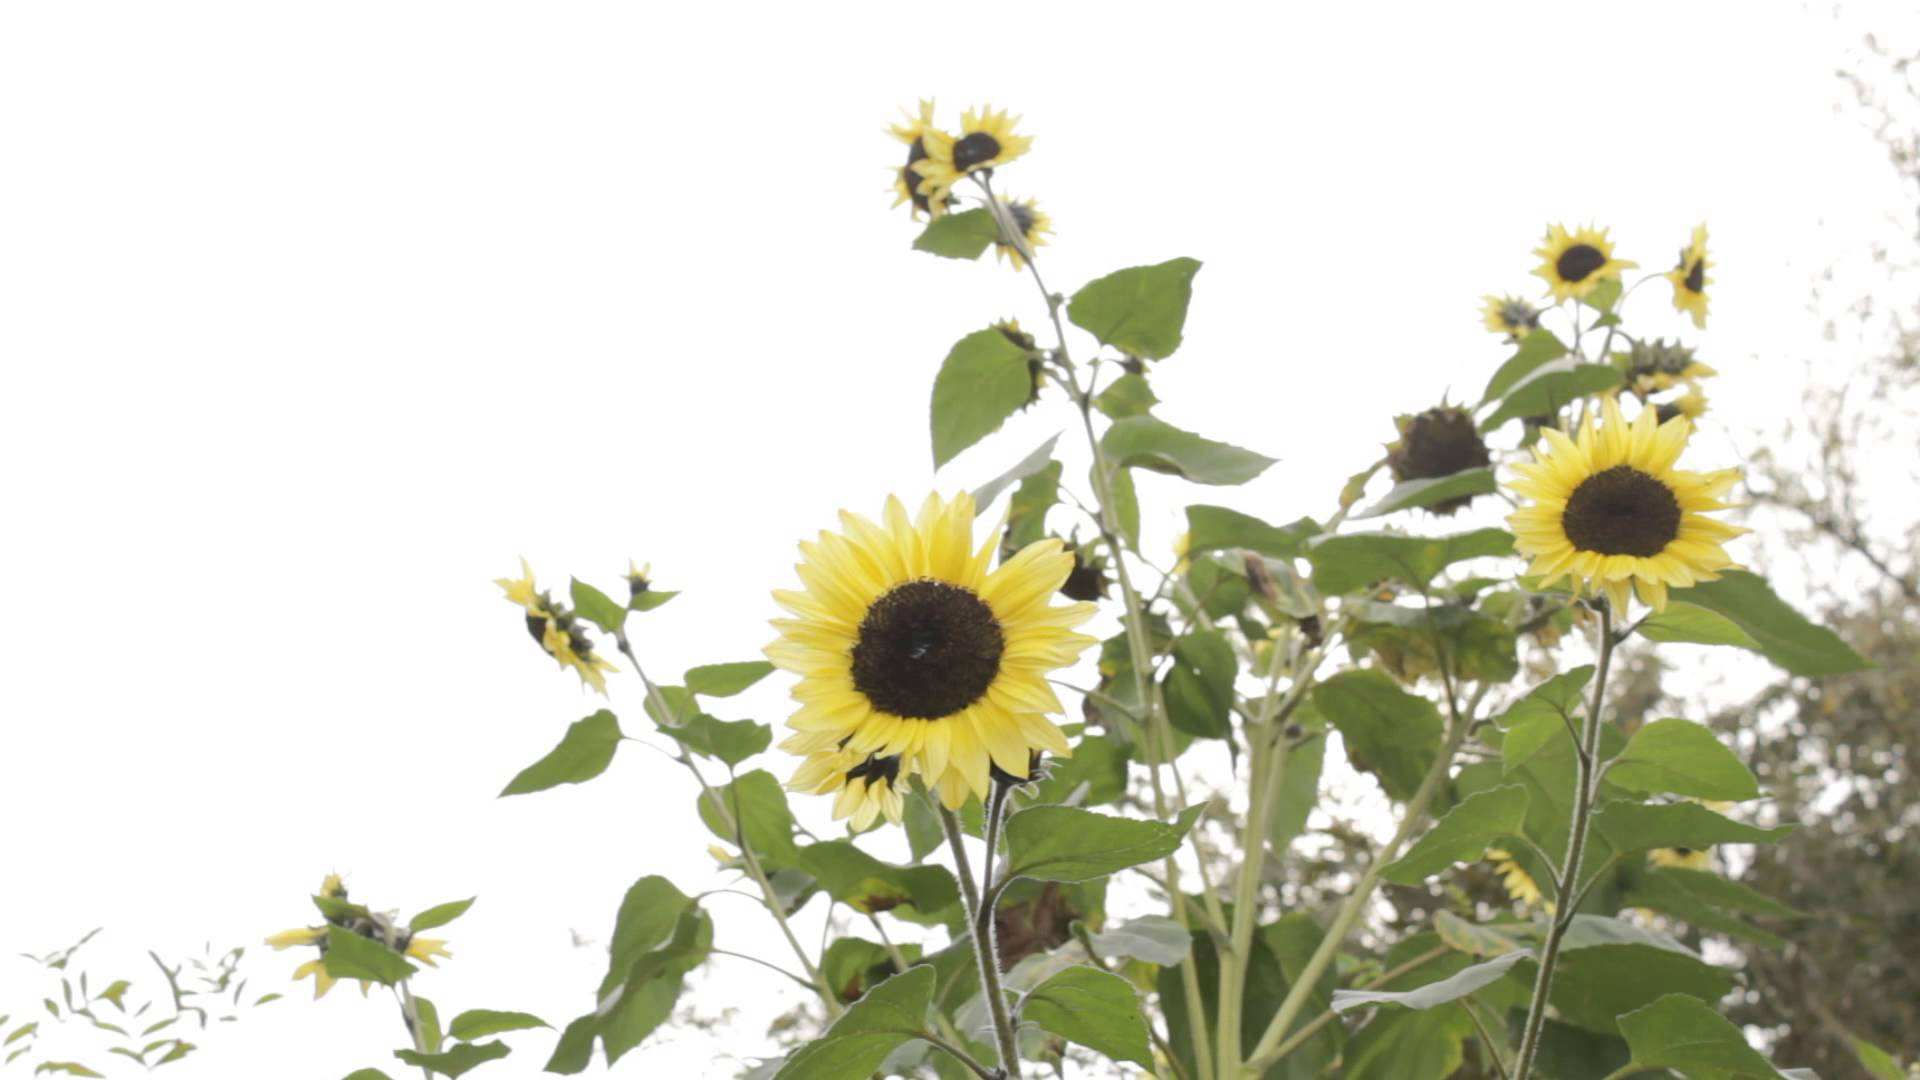 Sunflowers - White Background | Free Stock Footage Archive